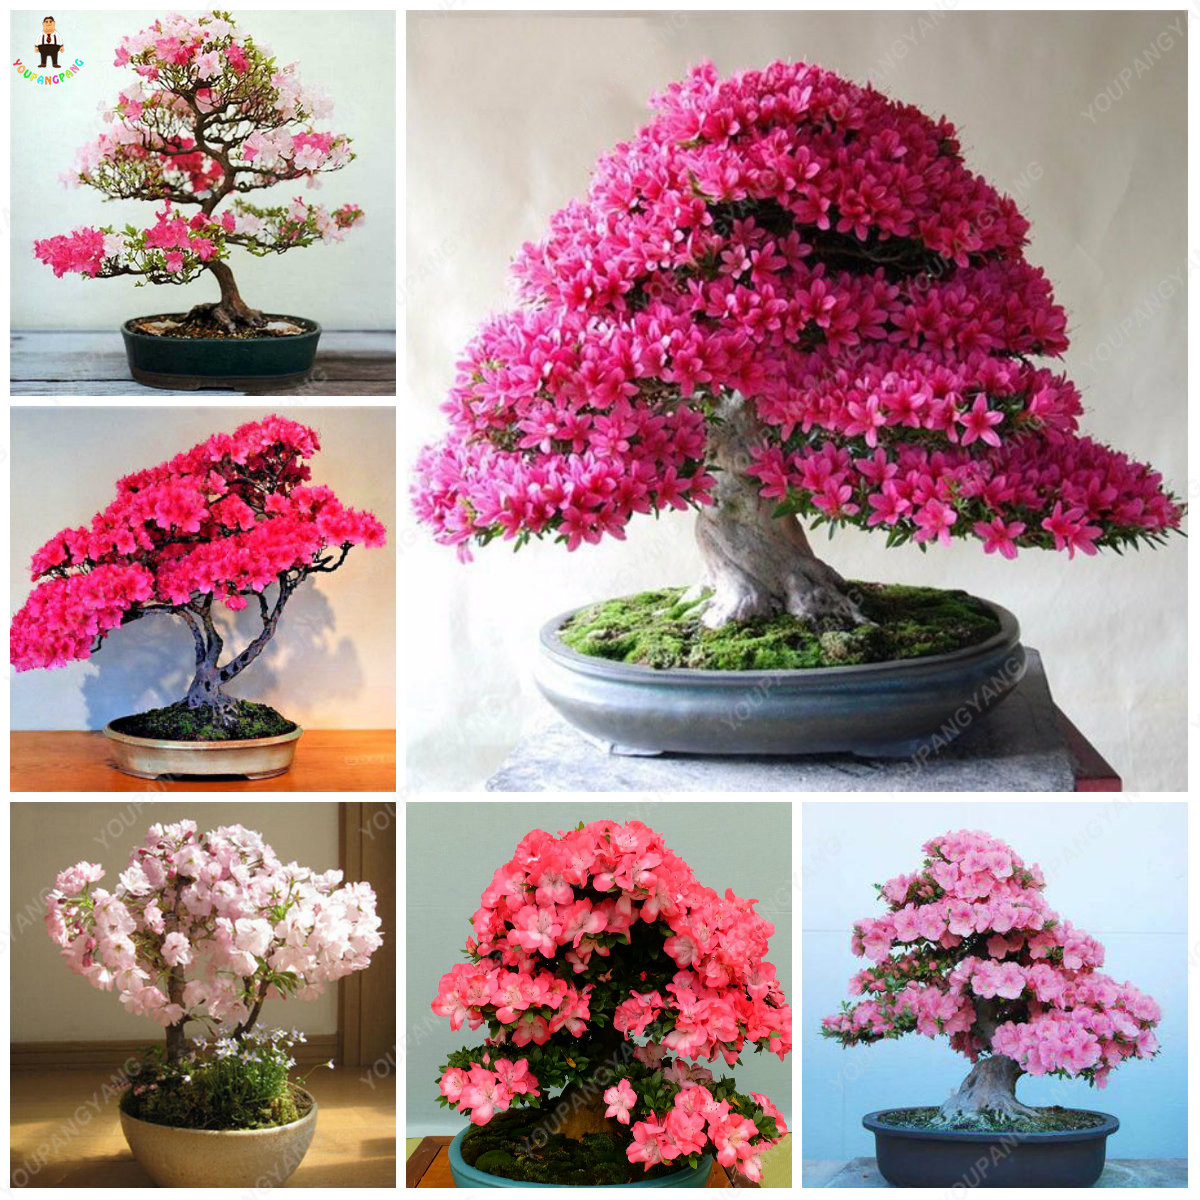 10pcs Rare Sakura Bonsai Flowers Cherry Blossoms Tree Plants For Home Garden Decoration Buy At The Price Of 0 88 In Aliexpress Com Imall Com